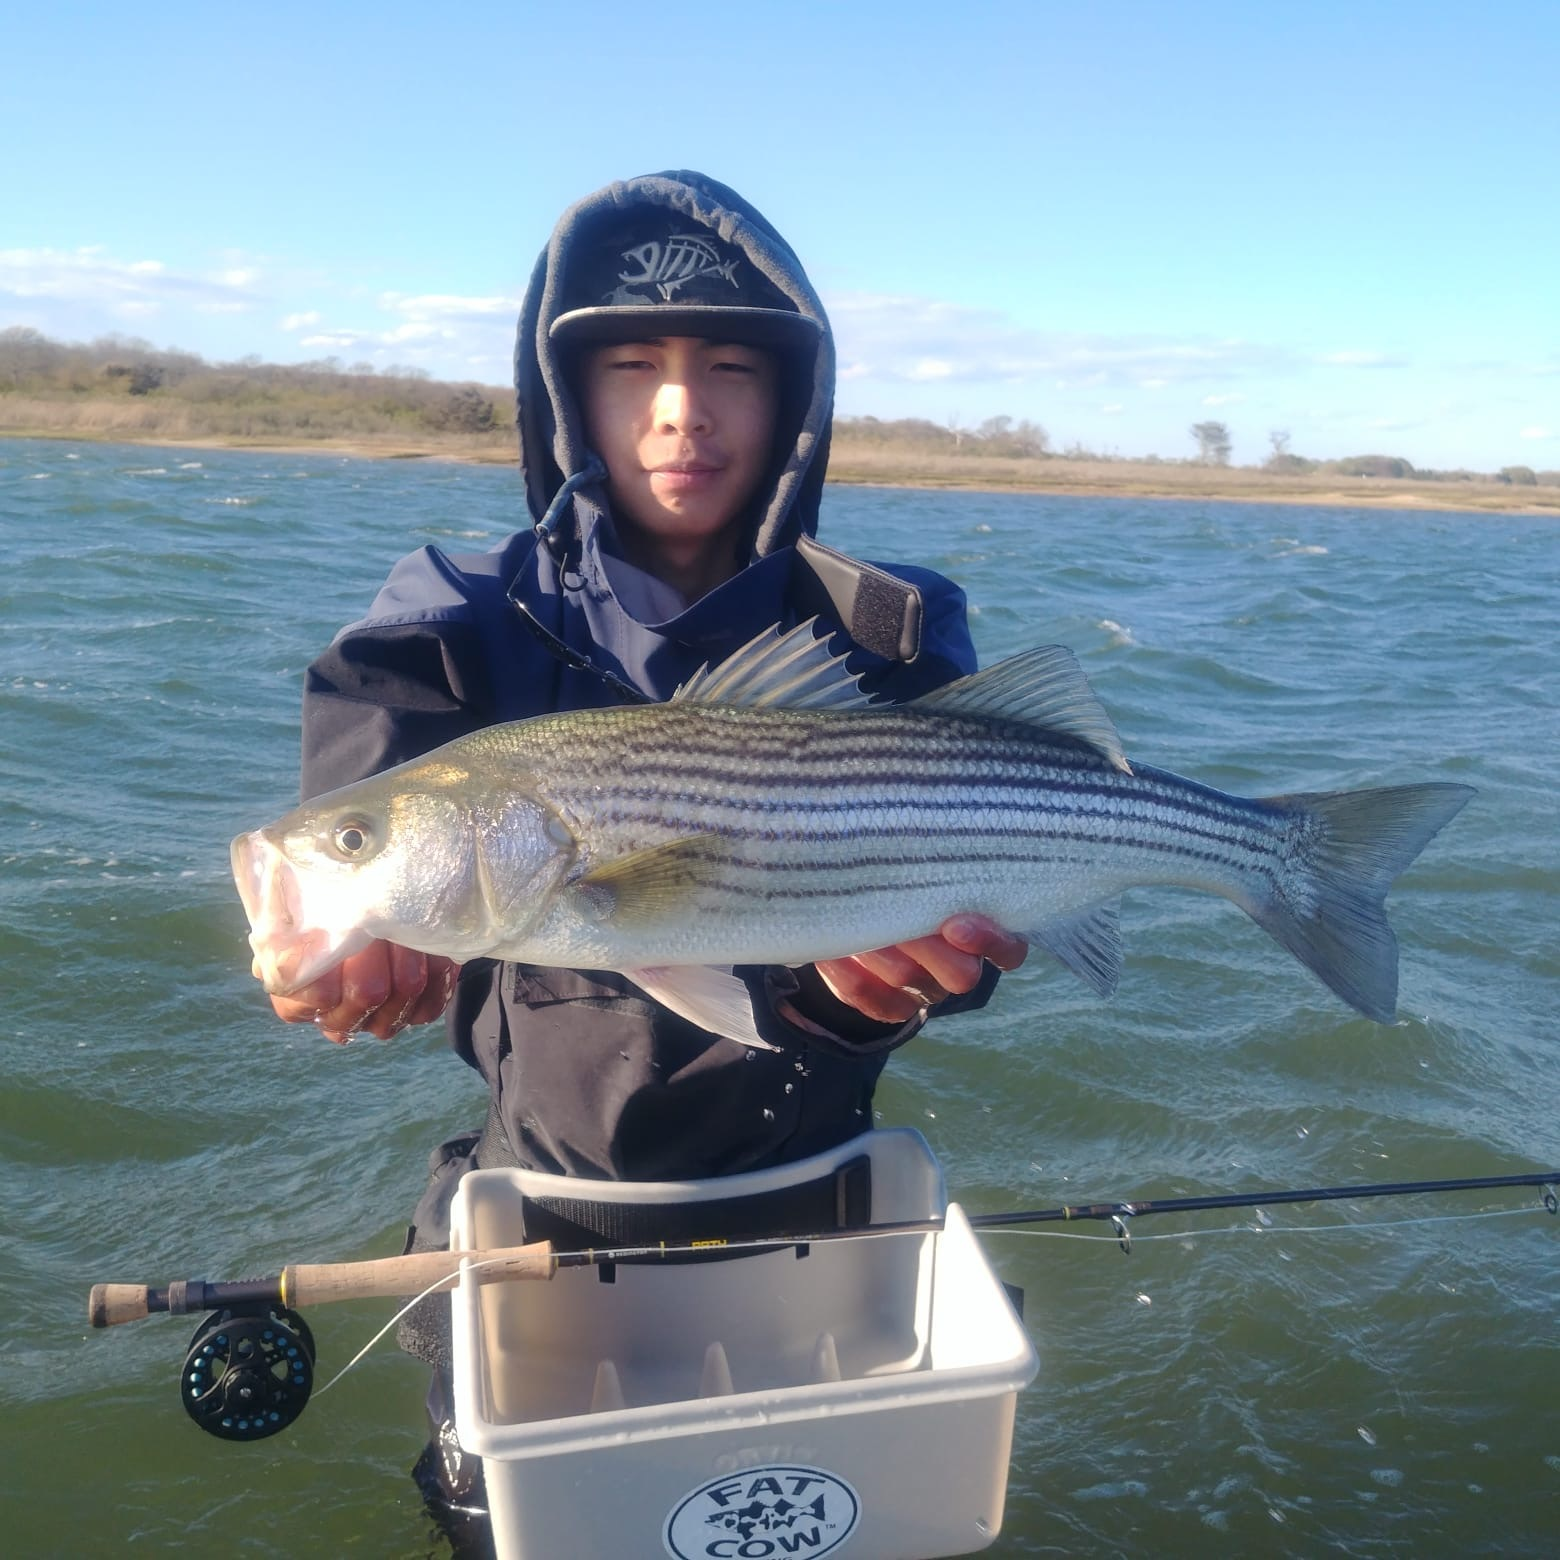 Jacky Long with a nice striped bass on fly caught in Shinnecock Bay recently.